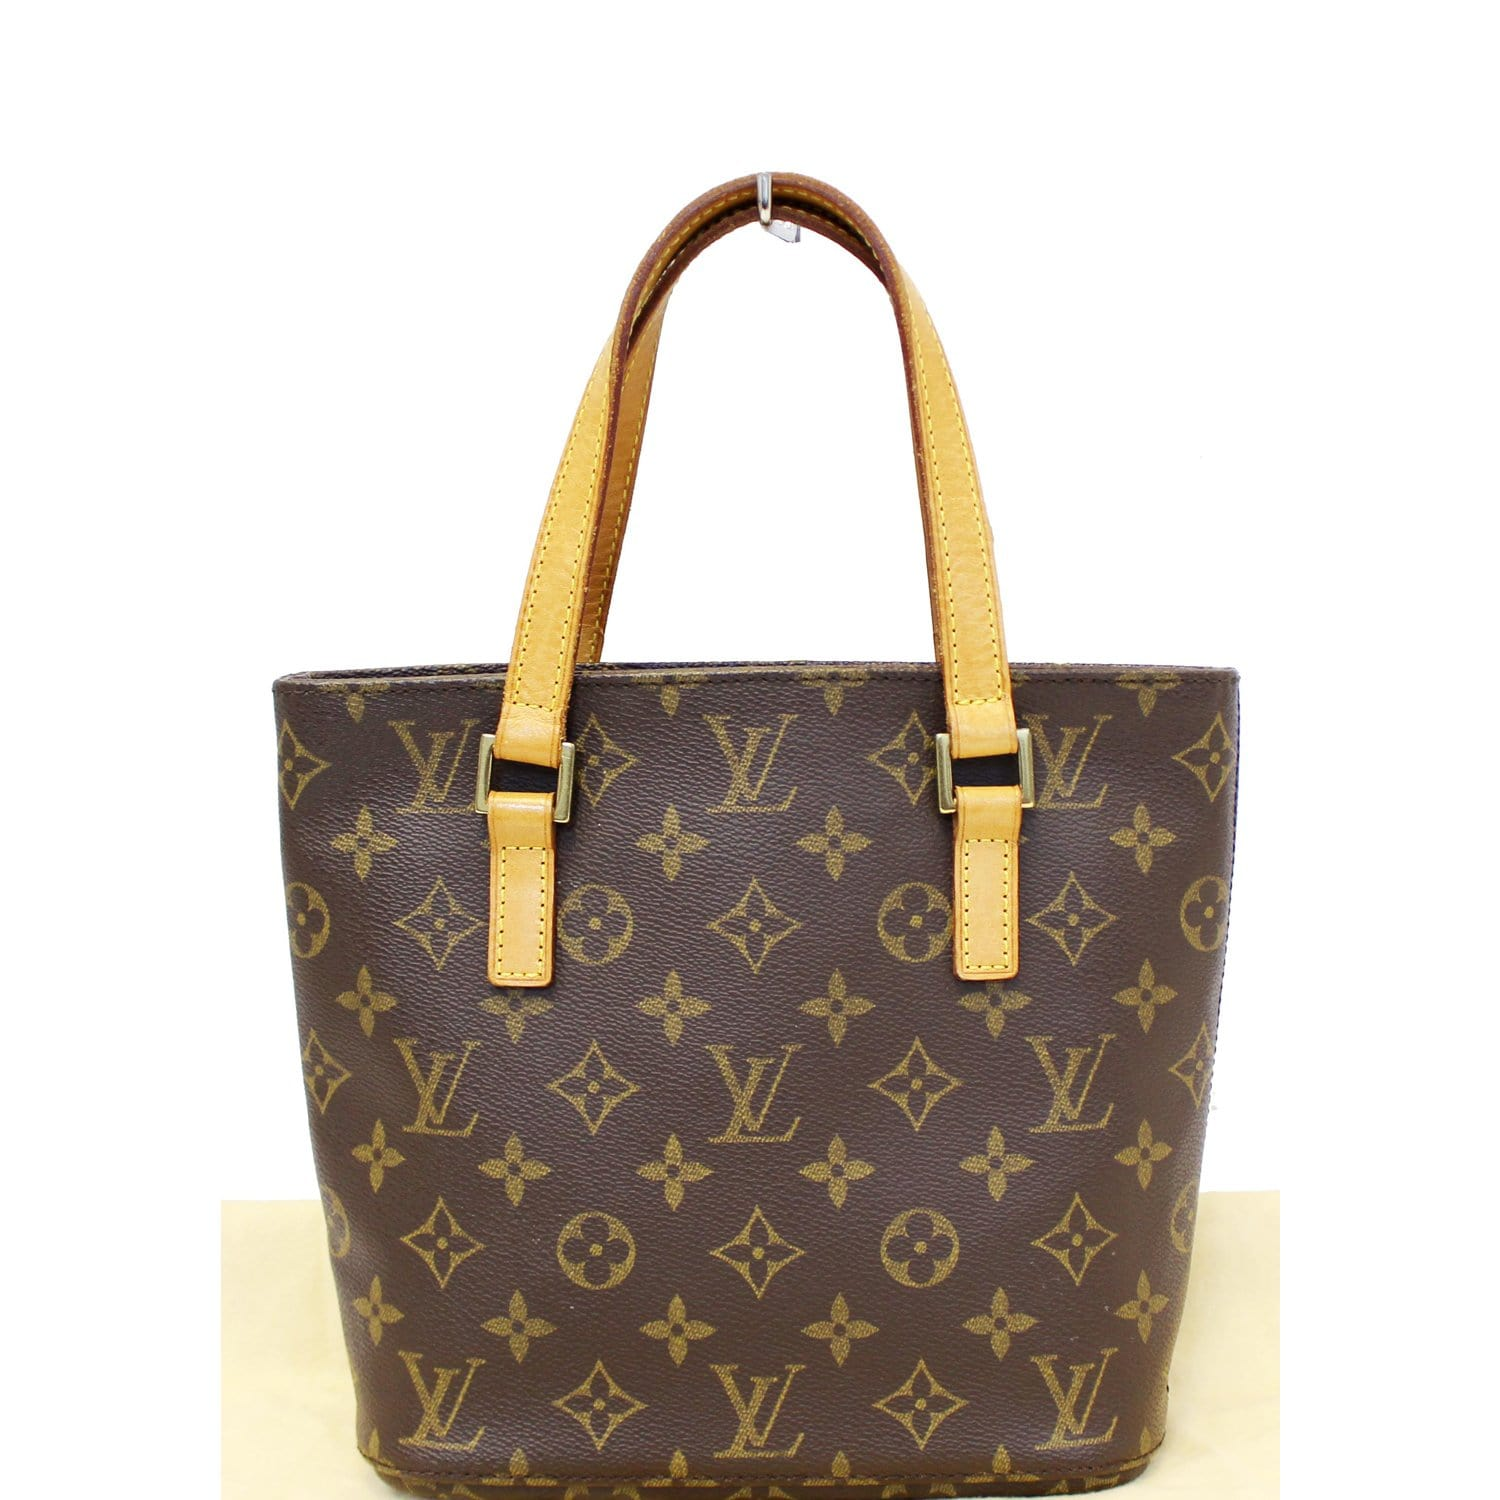 369423311 LOUIS VUITTON Vavin PM Monogram Canvas Tote Handbag